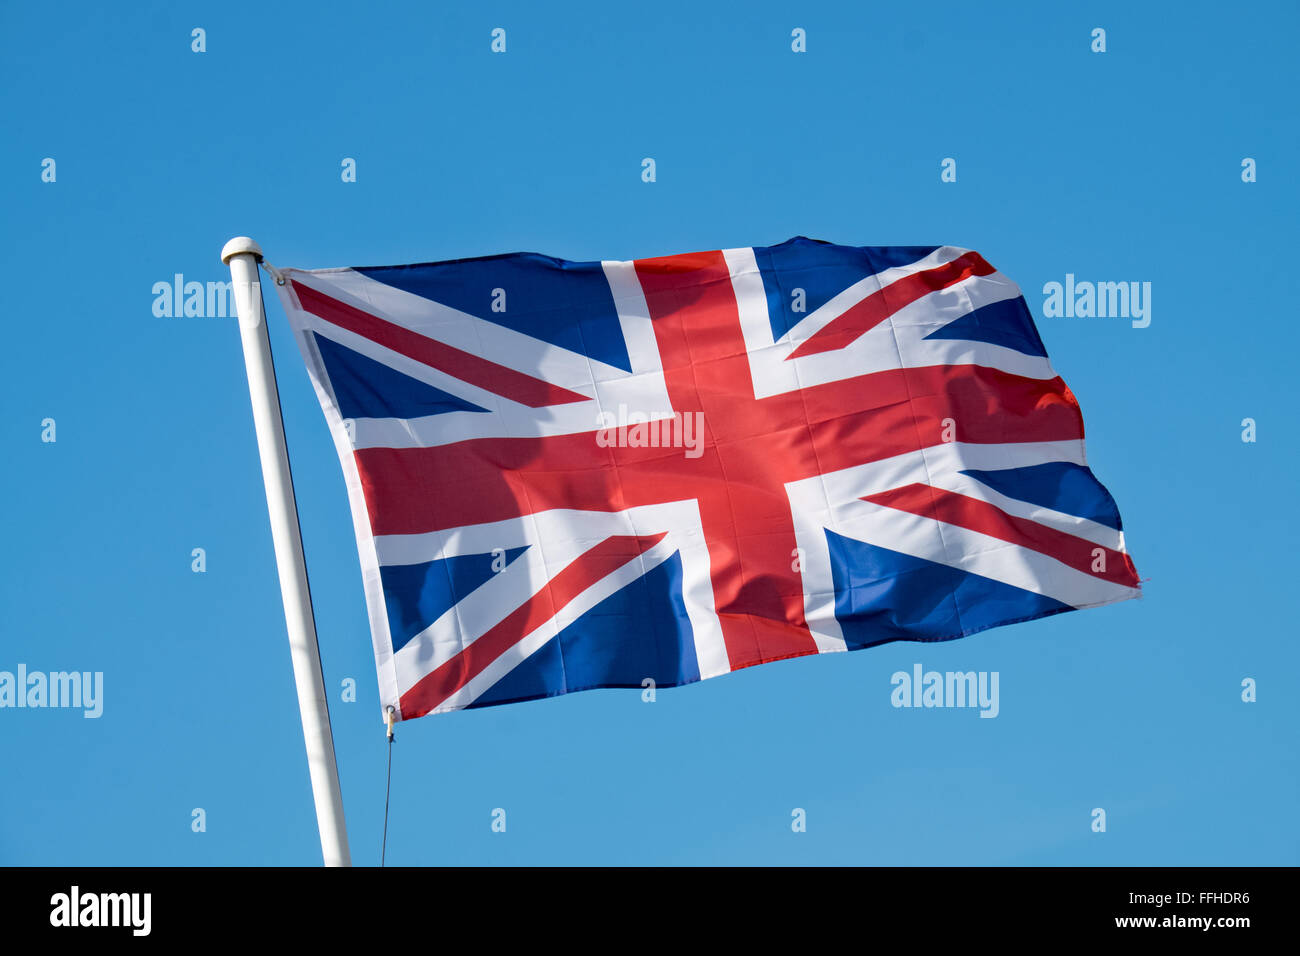 The union flag fluttering atop a white flagpole on a sunny day against a clear blue sky - Stock Image